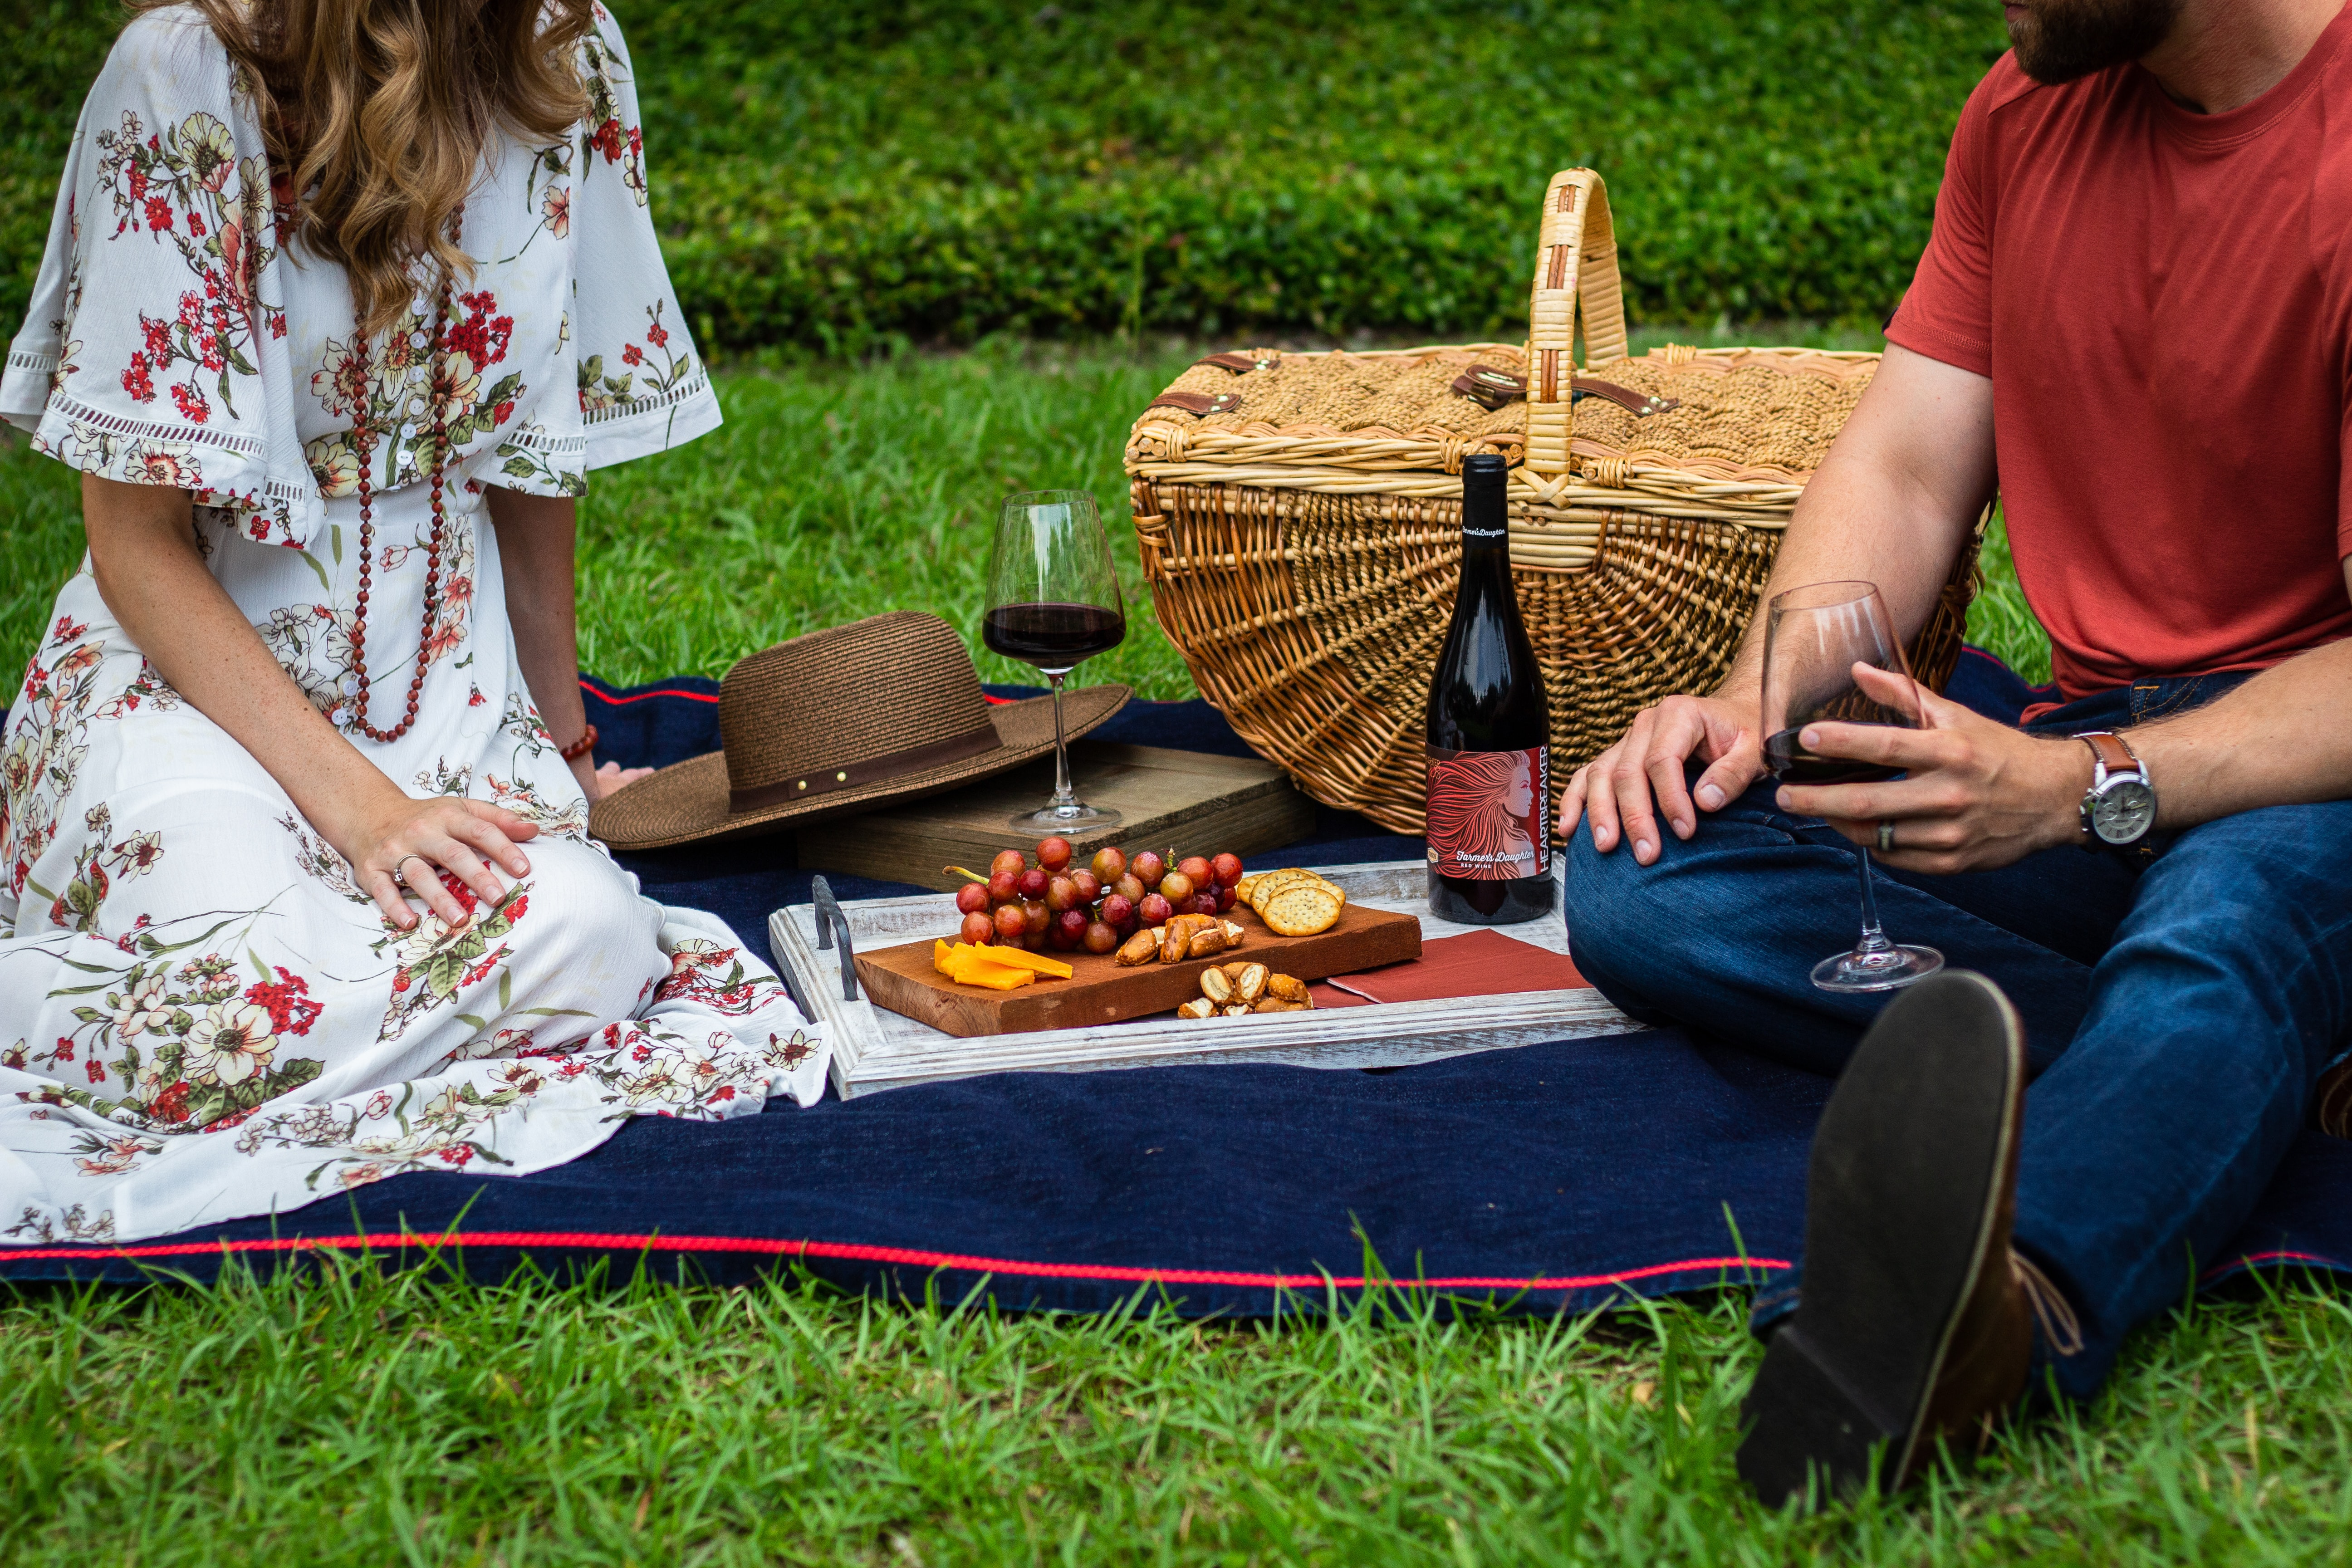 Five Essential Elements For A Romantic + Rural Picnic